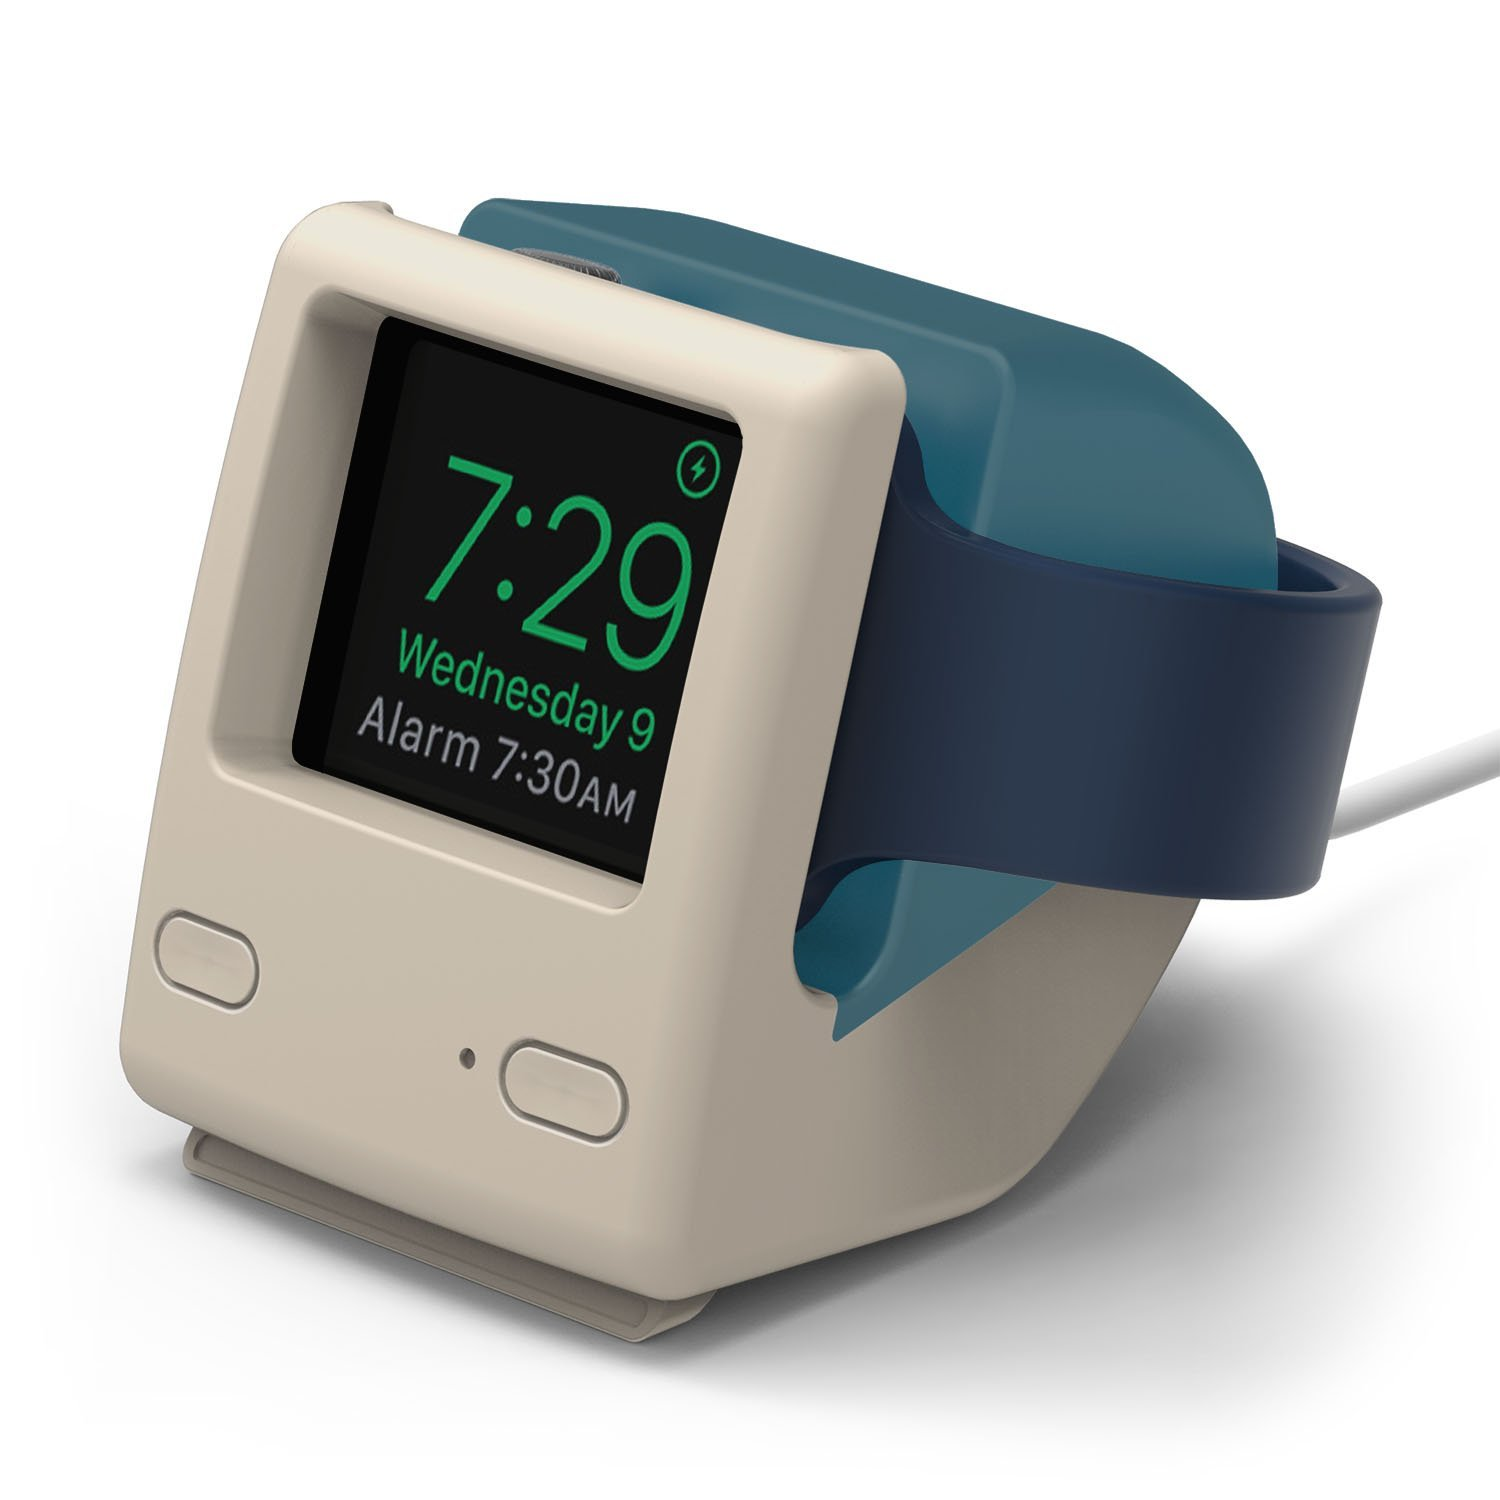 Elago-W4-Apple-Watch-Stand-iMac.jpg